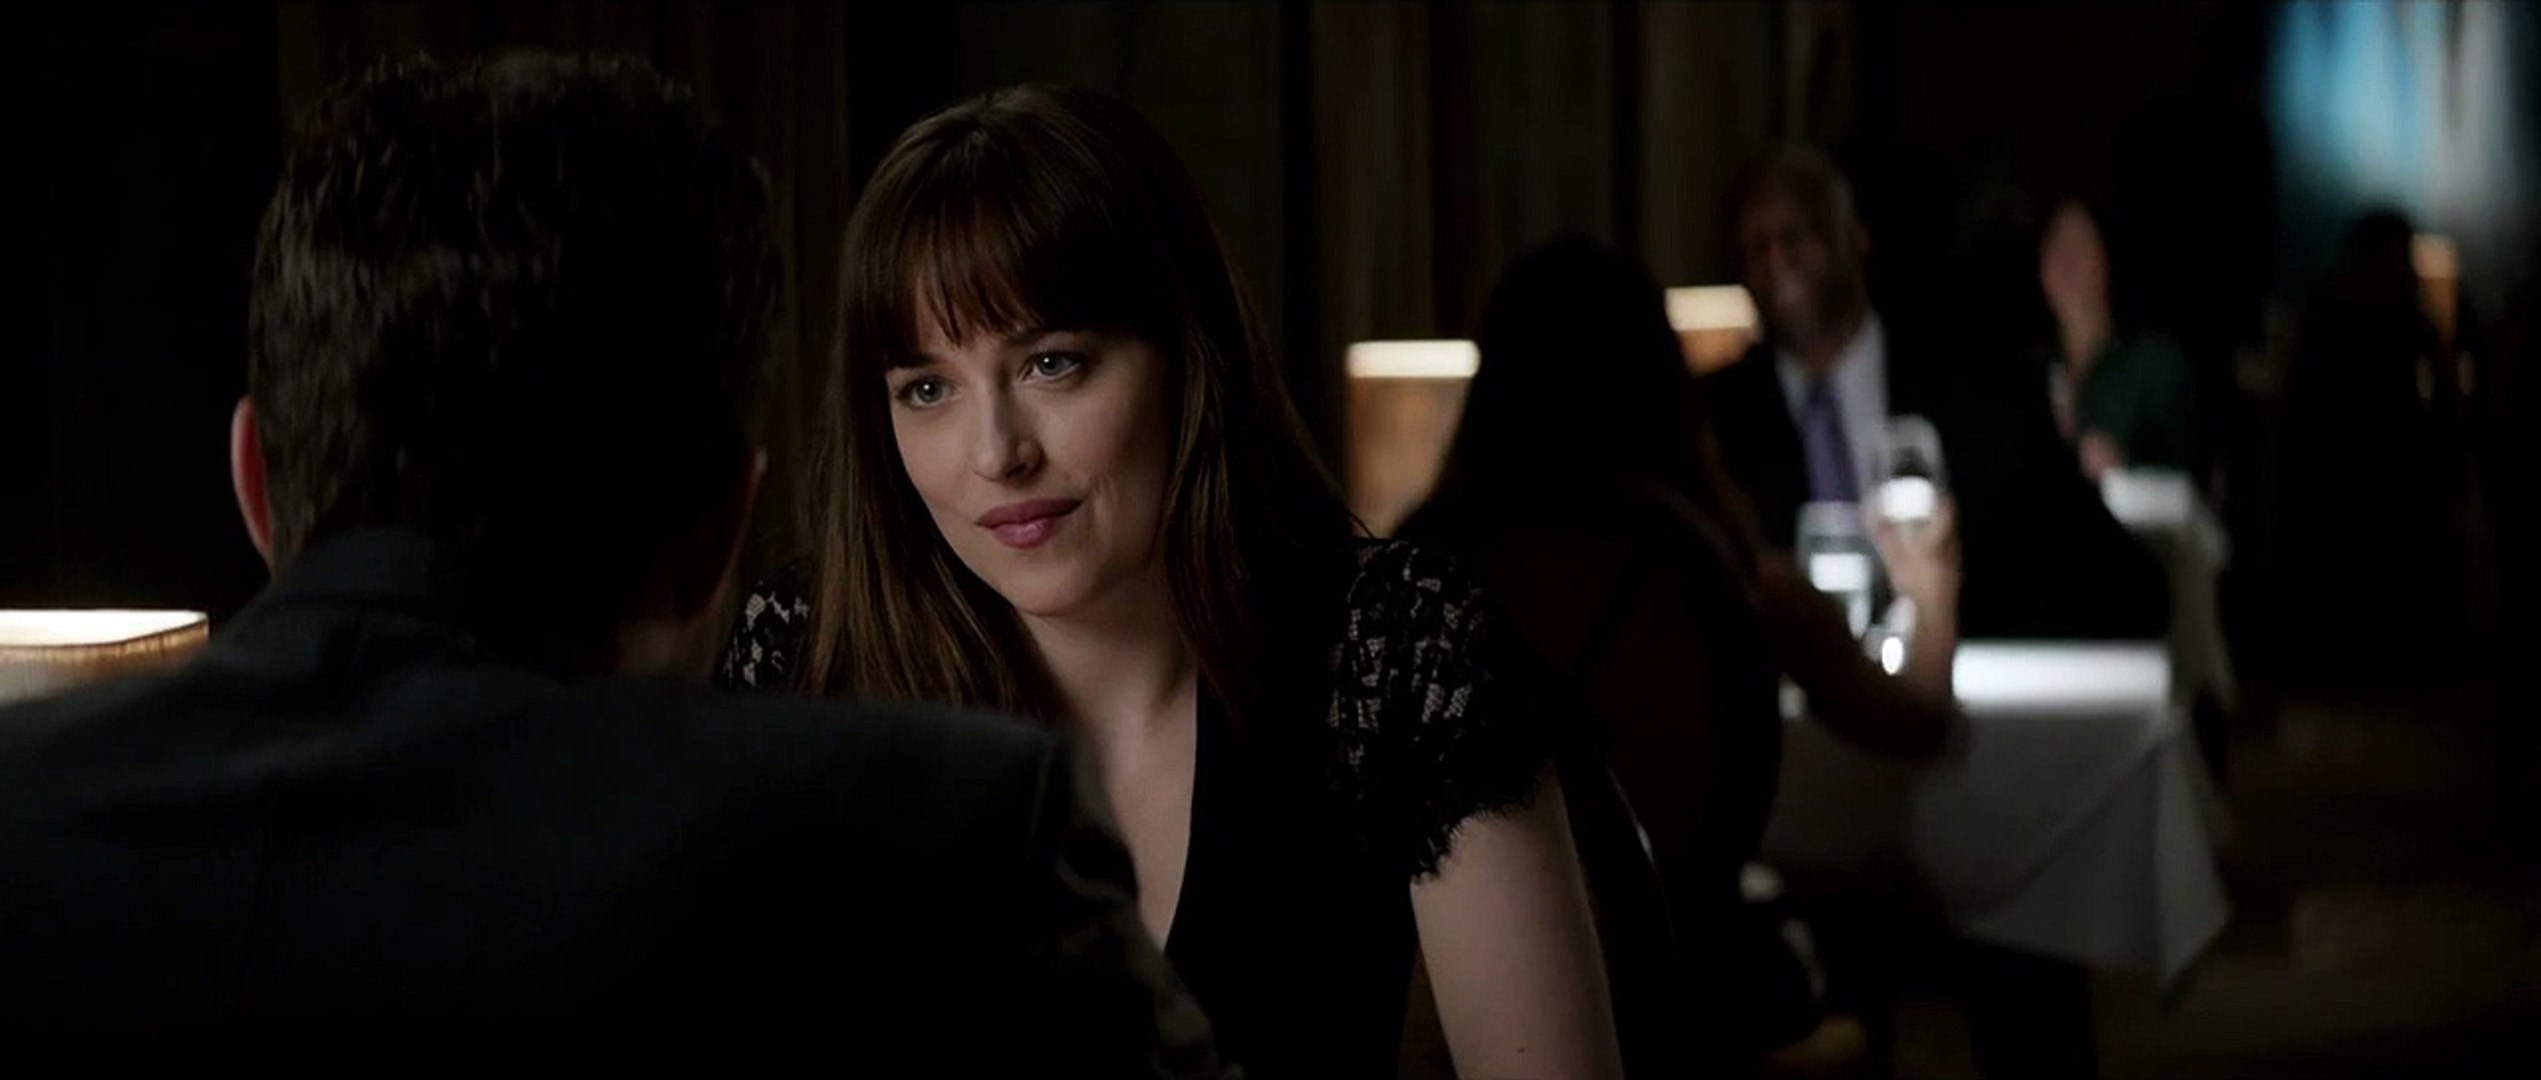 NEW Fifty Shades Darker Trailer #2 (2017) _ Movieclips Trailers-oQCyZKsT82M